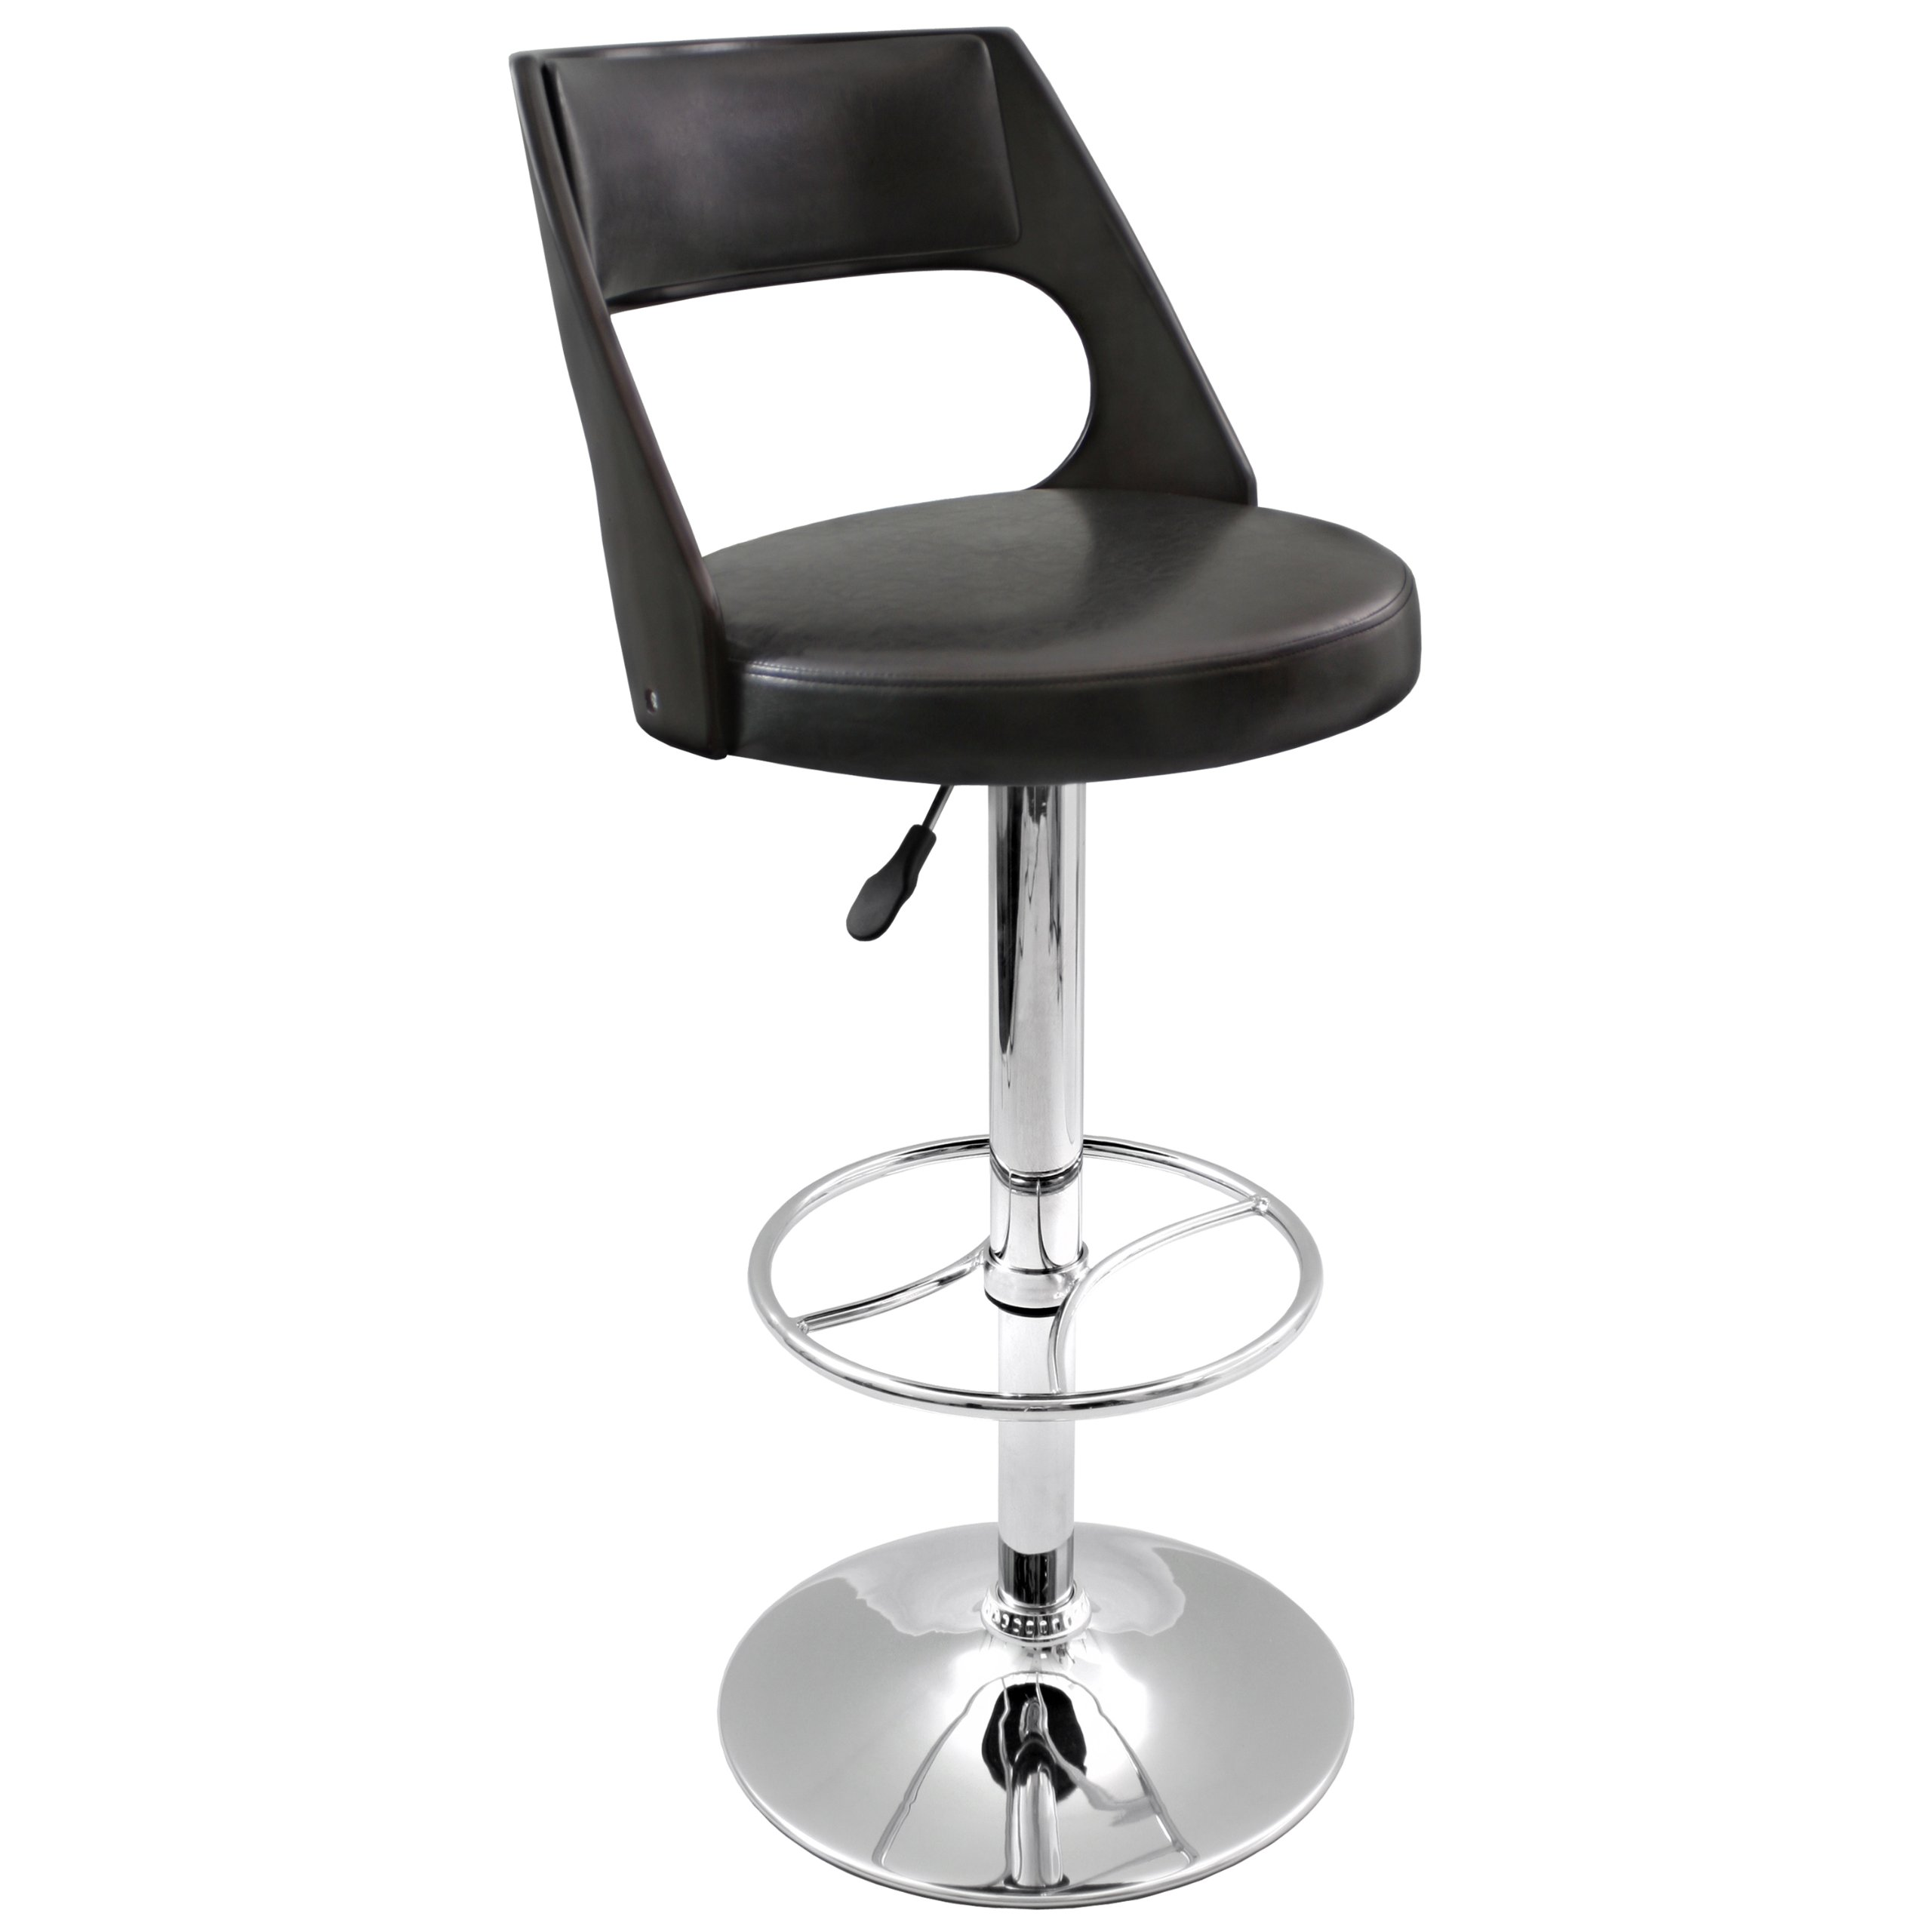 Lumisource Presta Barstool, Wenge Wood/Black Seat